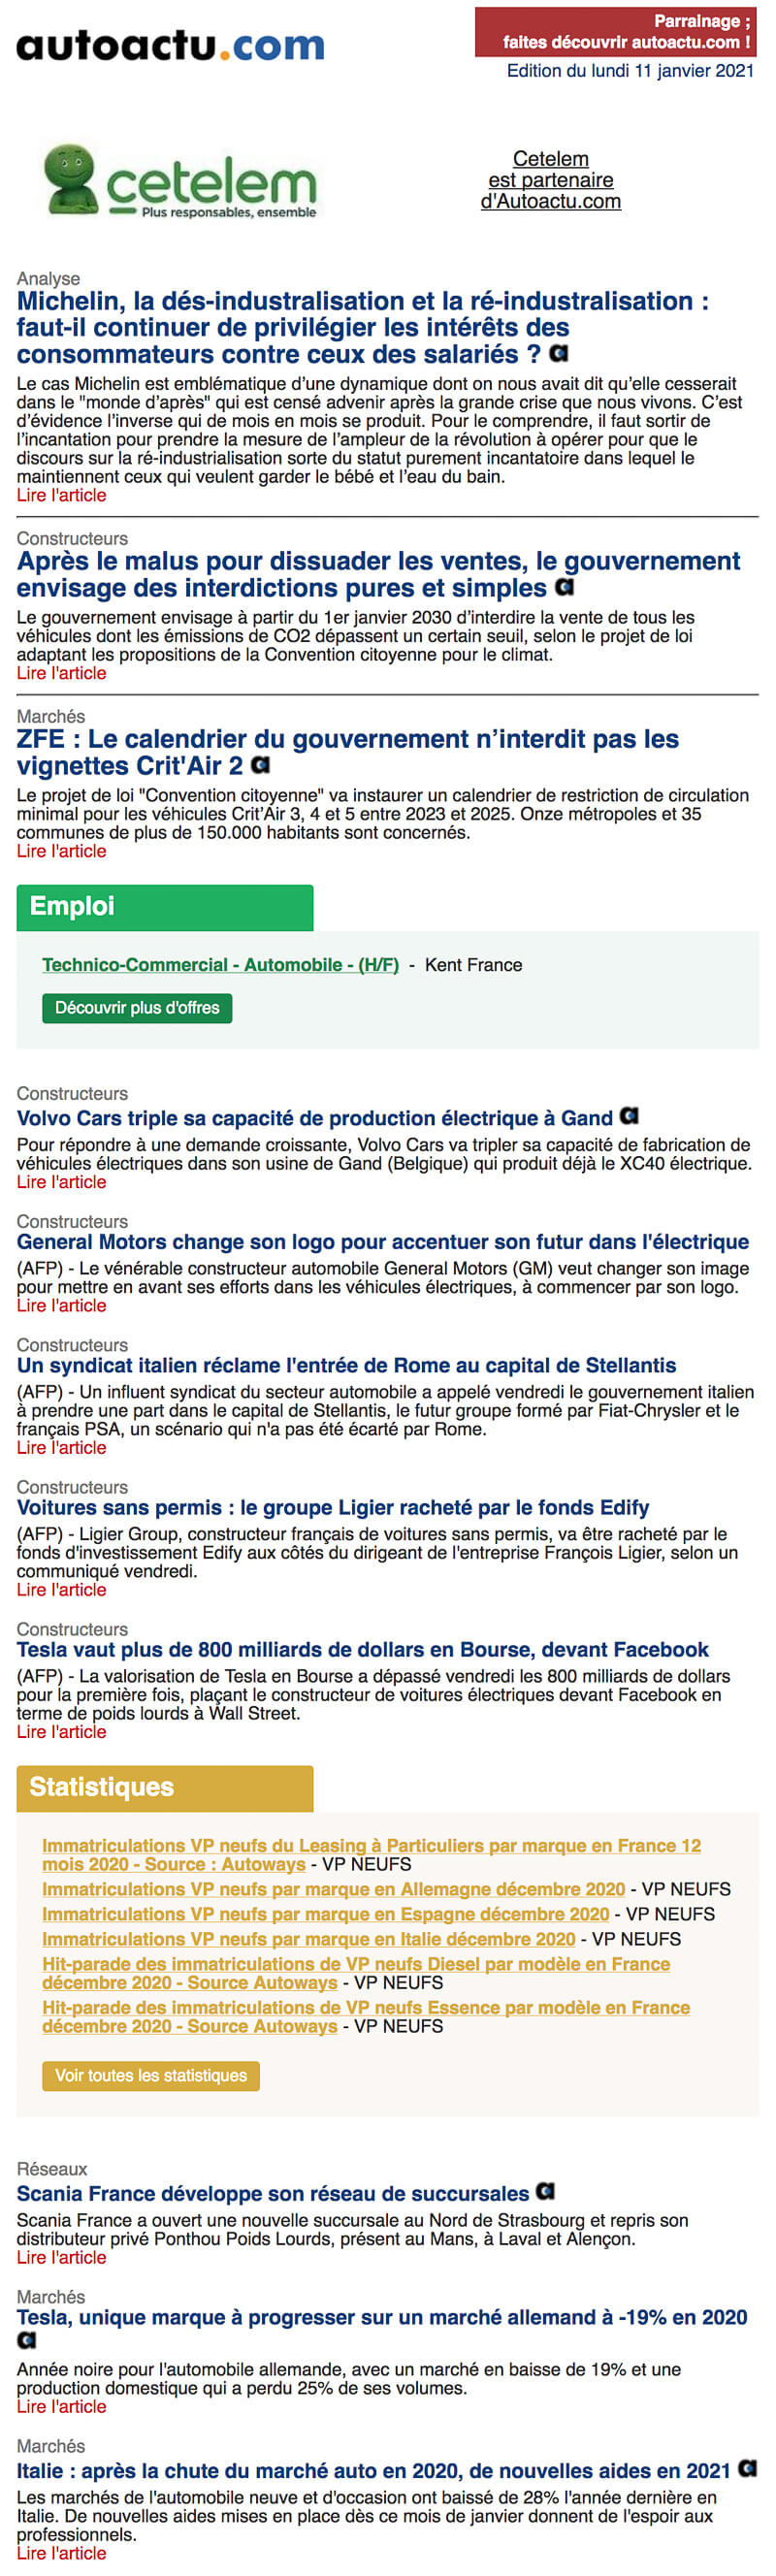 Newsletter Autoactu